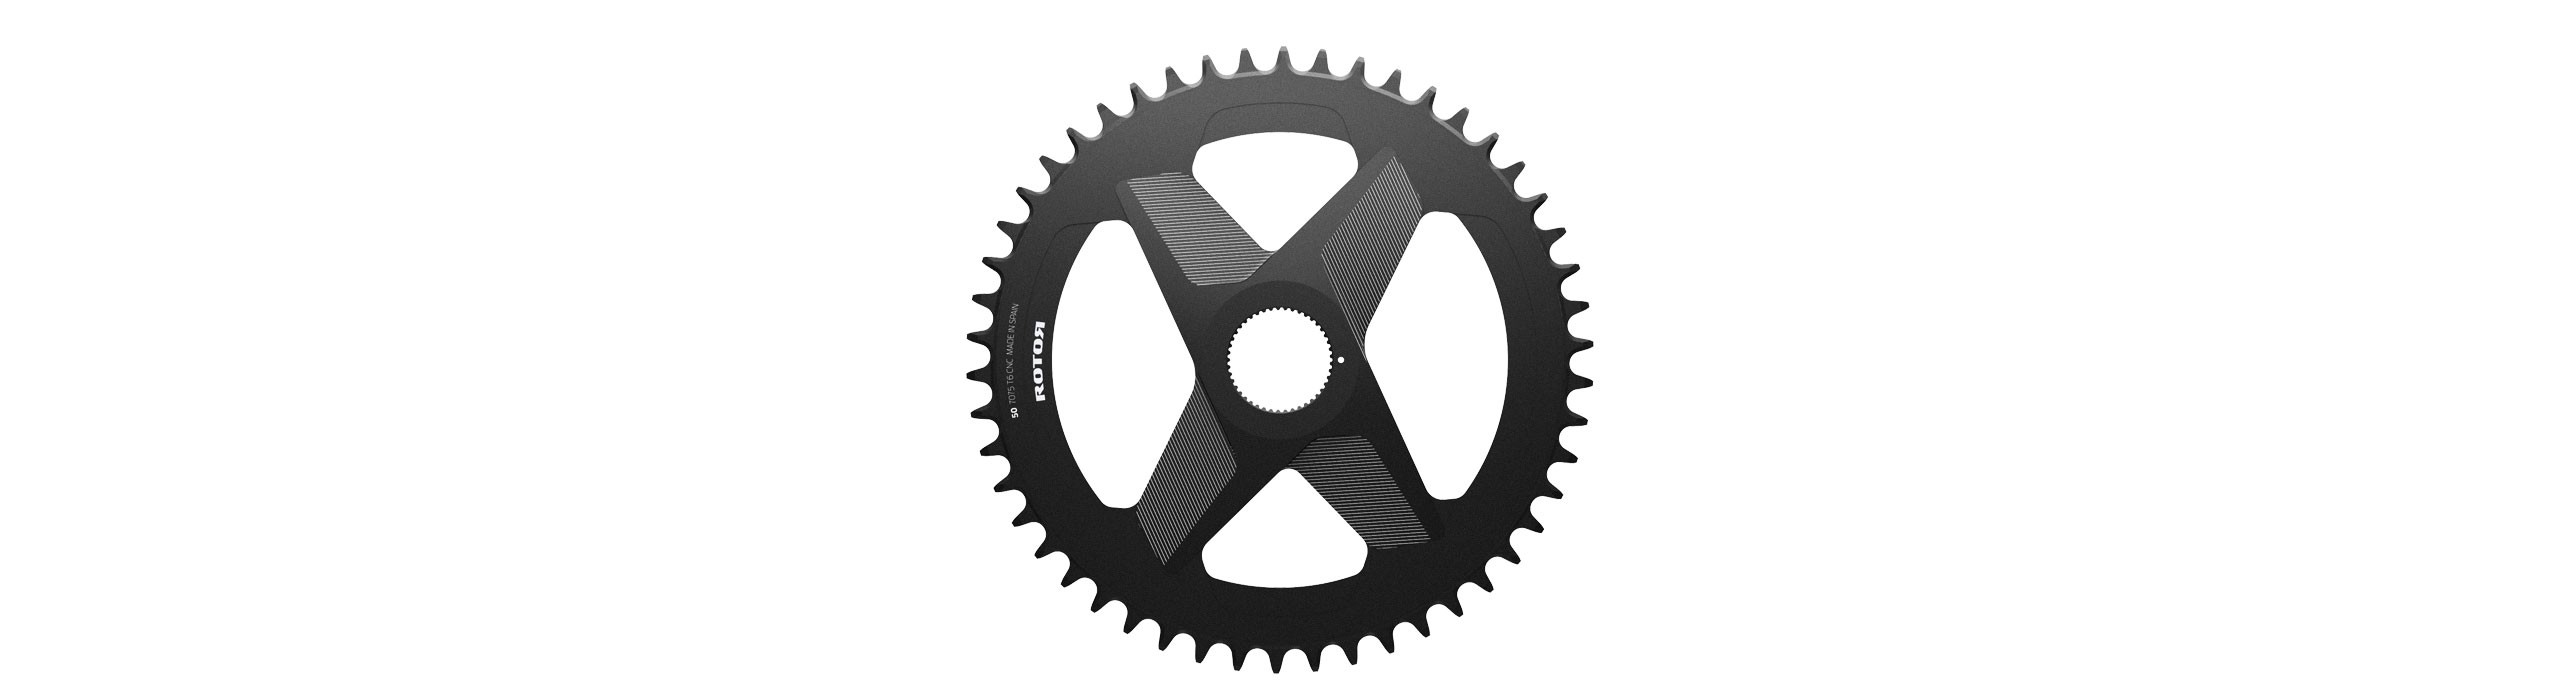 Round 1x DM Chainrings